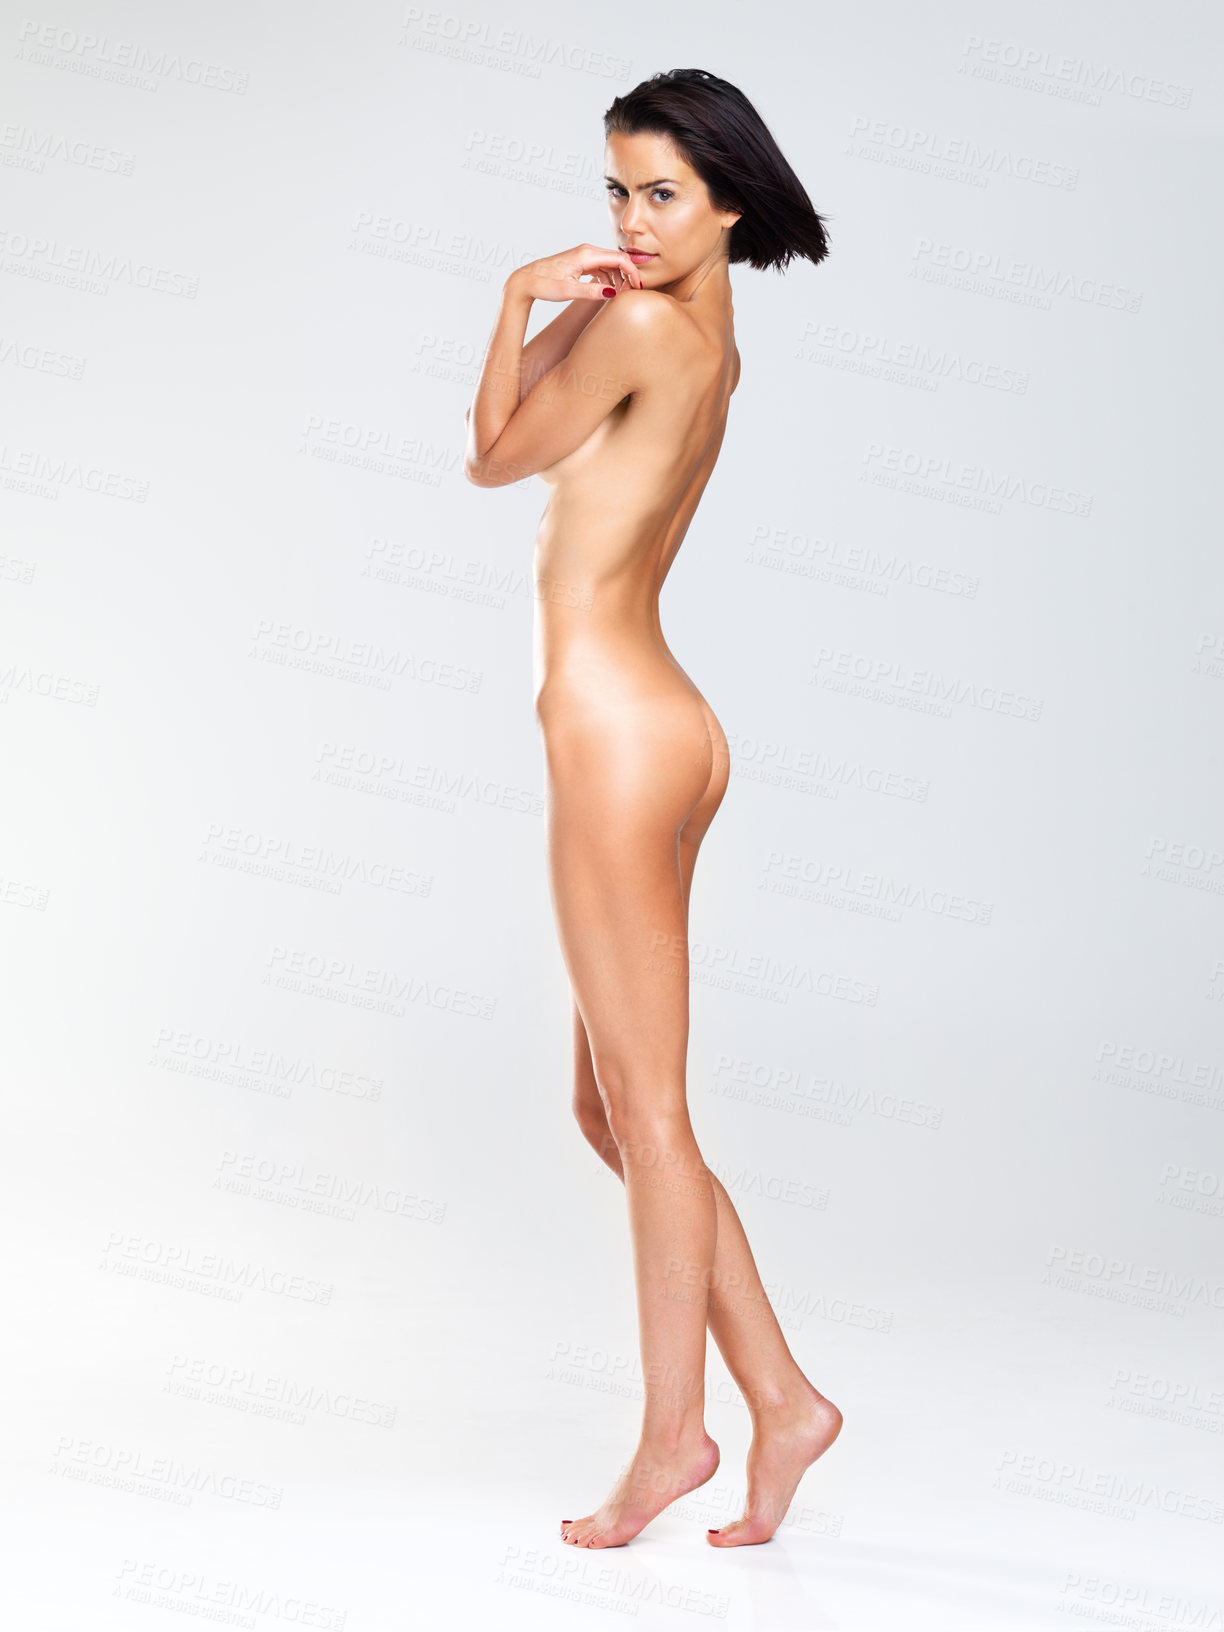 Simple, naked beauty | Buy Stock Photo on PeopleImages